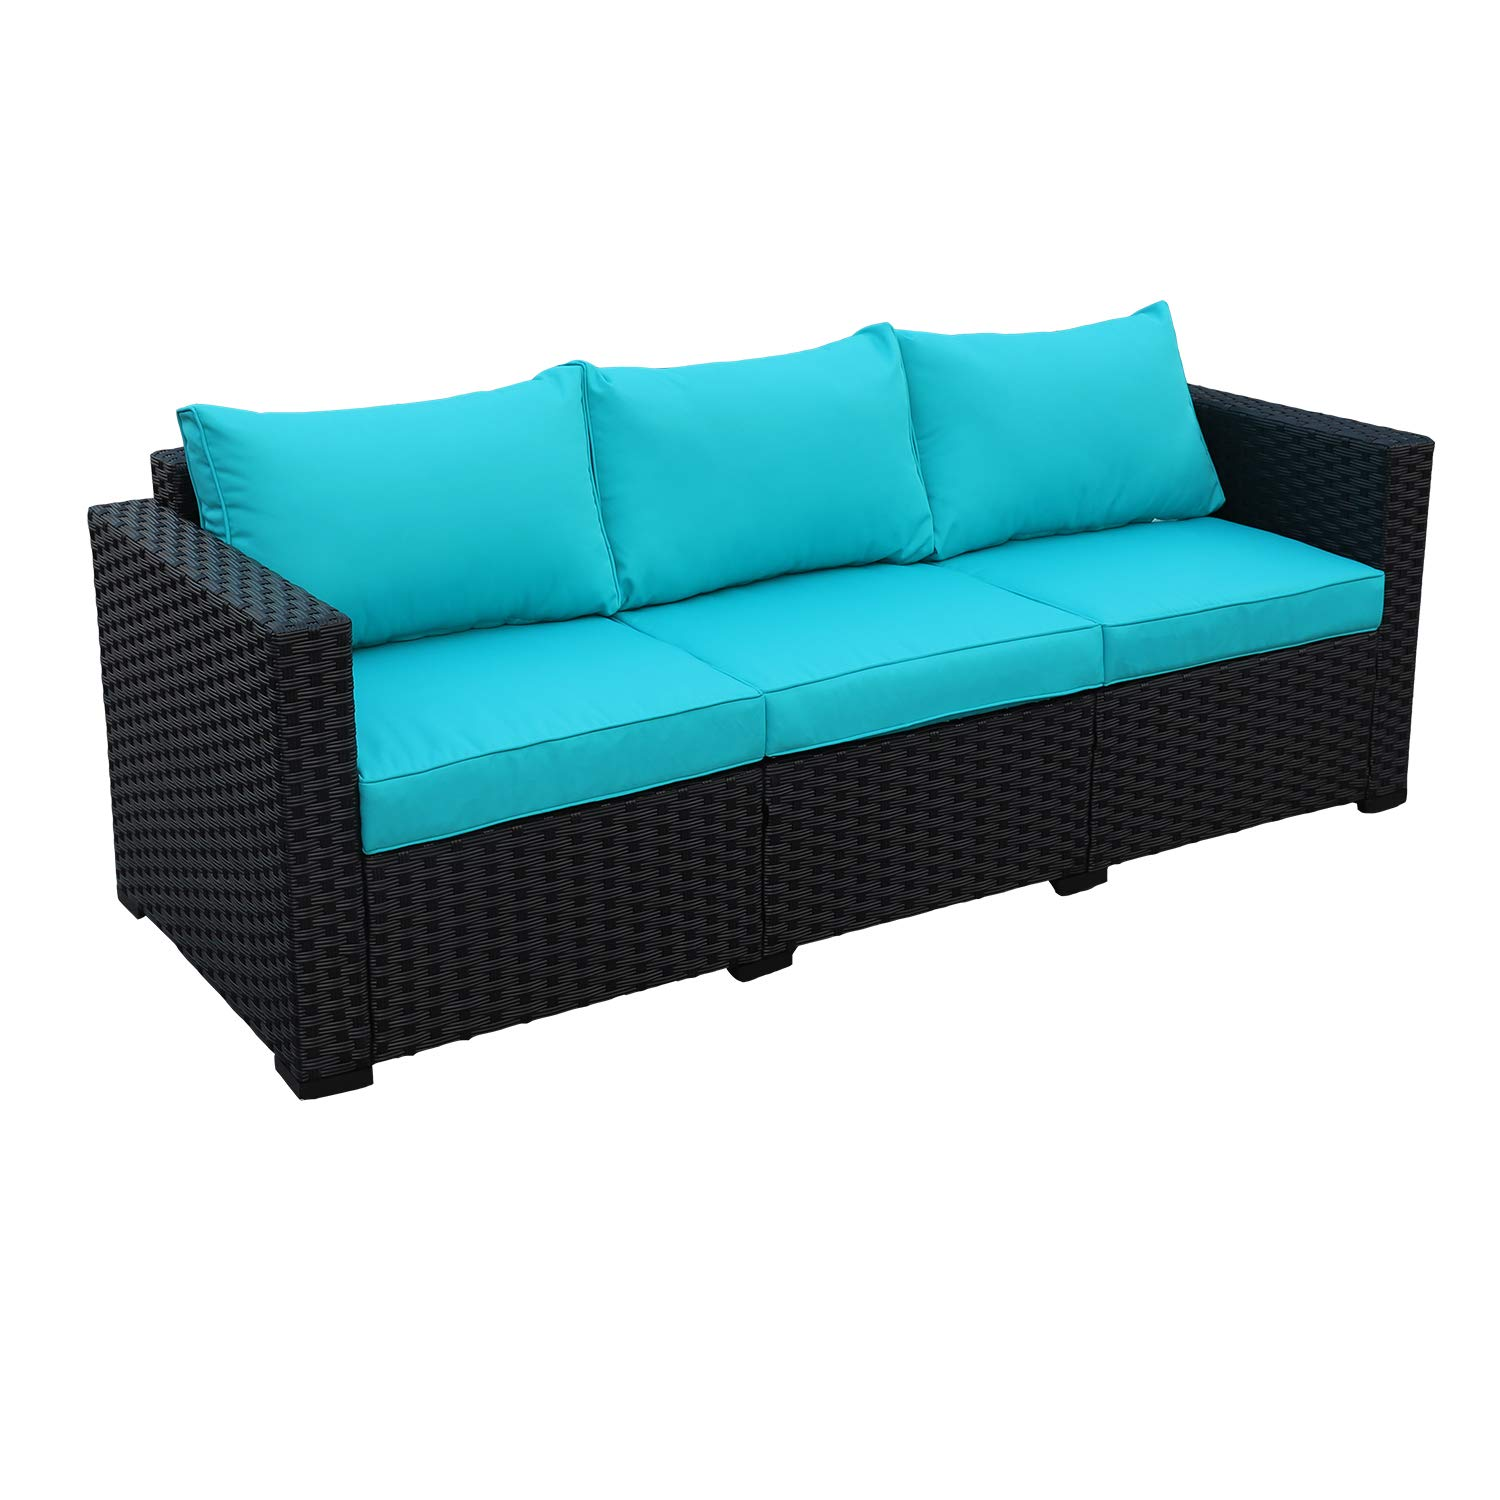 Patio PE Wicker Couch - 3-Seat Outdoor Black Rattan Sofa Furniture with Turquoise Cushion by WAROOM